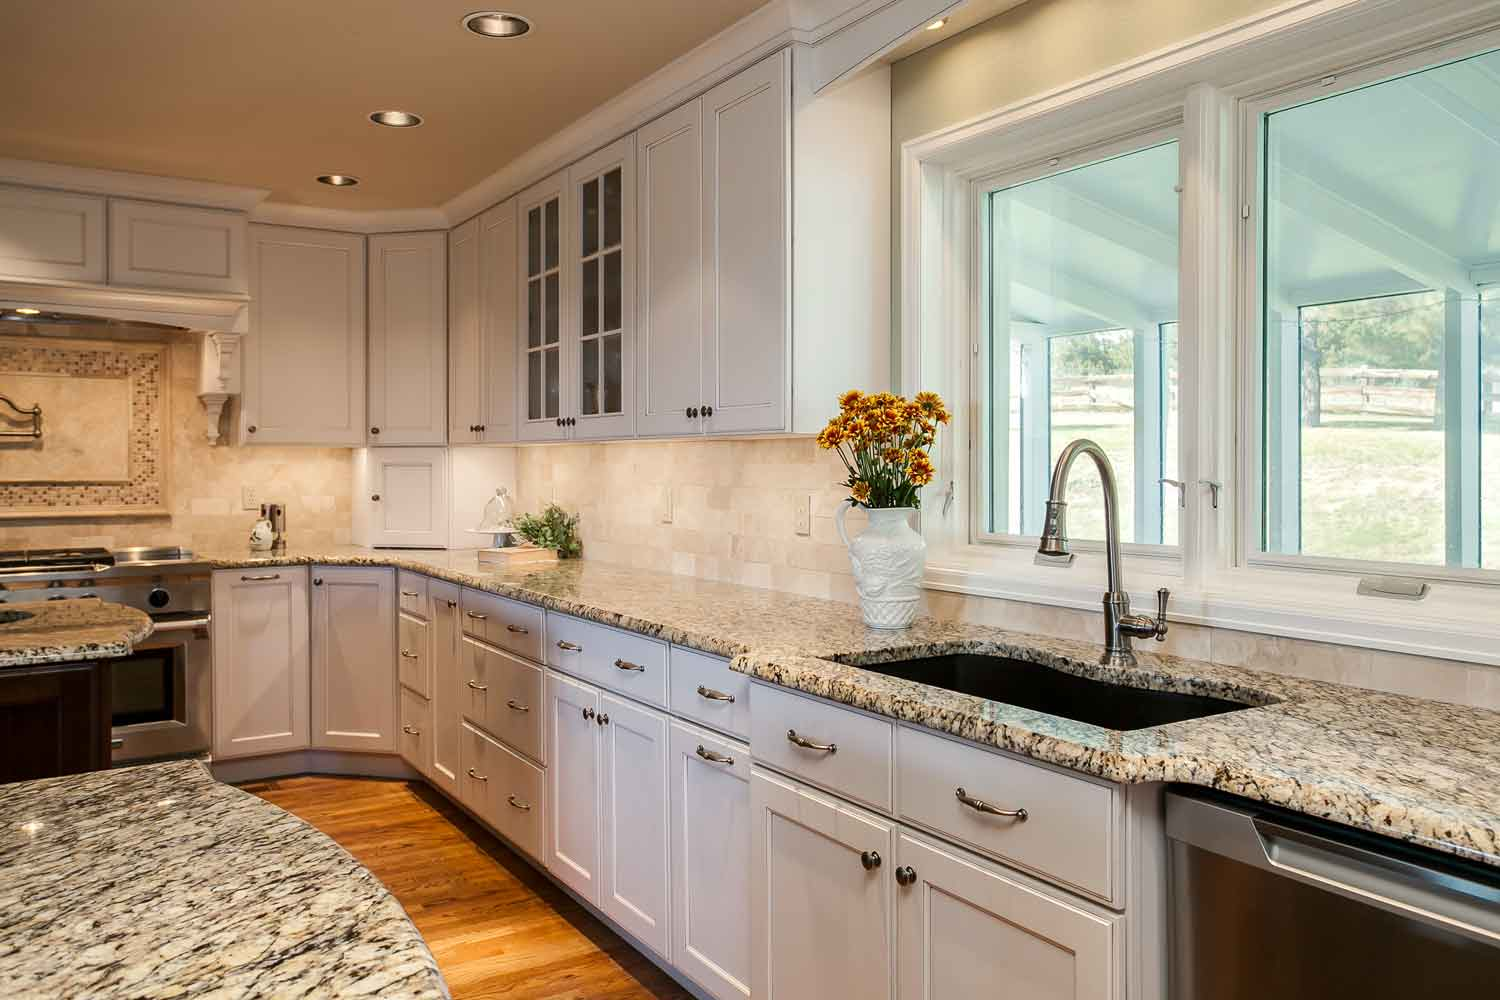 denver home renovation small rooms to large great room kitchen remodel denver gorgeous kitchen great room renovation project in Denver CO